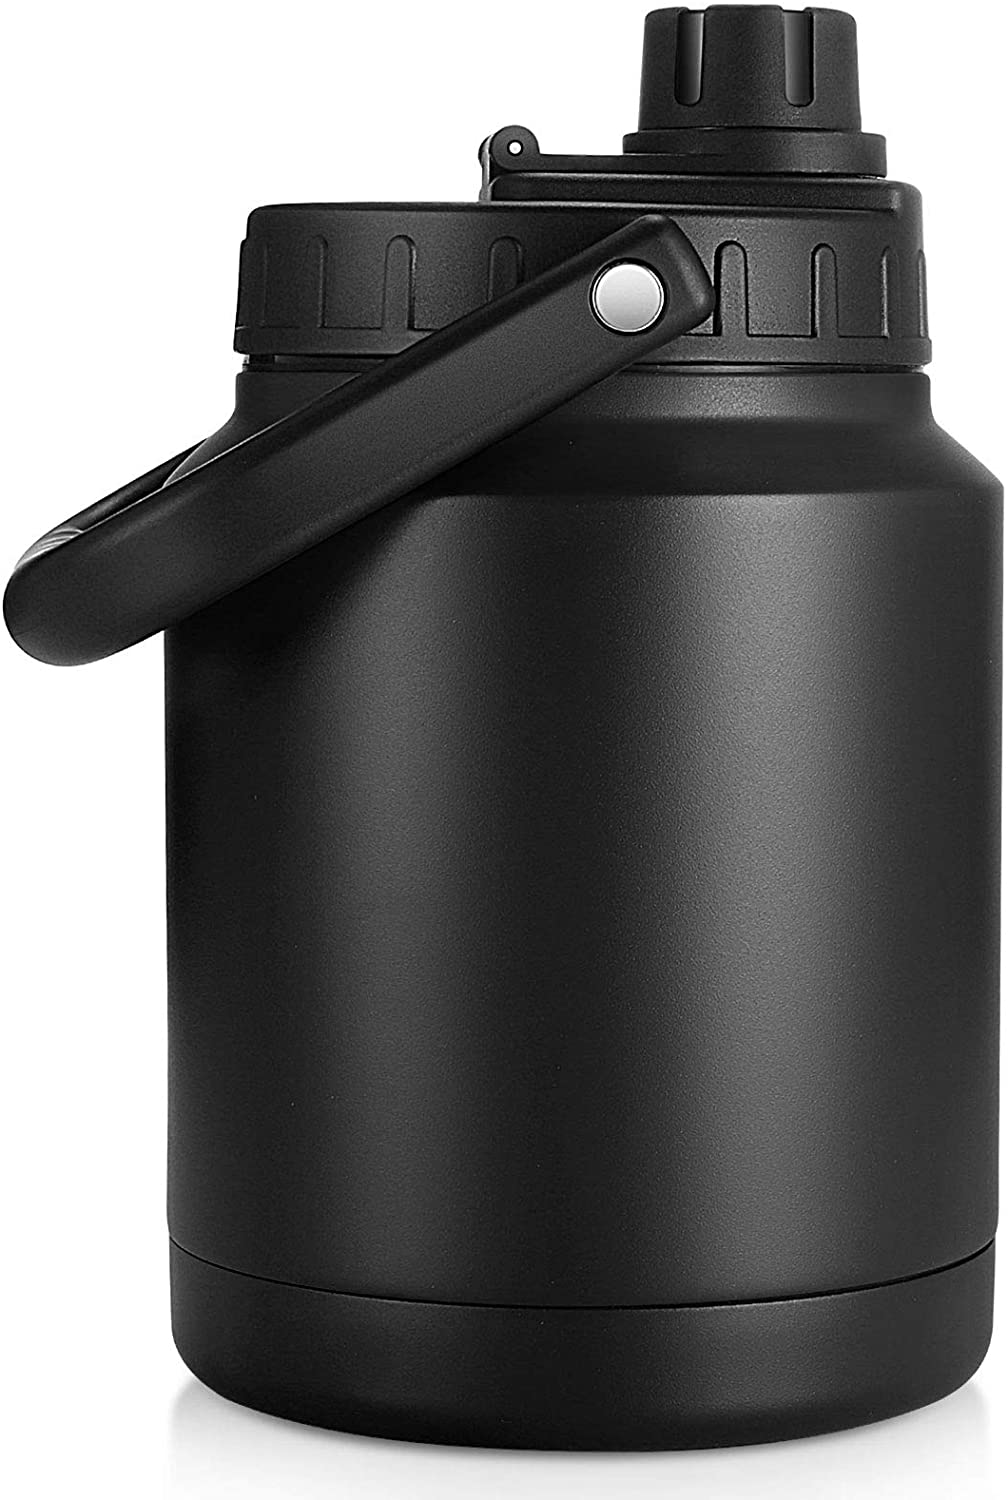 Sursip 64 Oz Water Bottle,Vacuum Insulated Stainless Steel Double Walled Water Jug,Thermos Water Bottle for Hot and Cold Drinks,Durable and Resistant Water Flask-Half Gallon(Black)